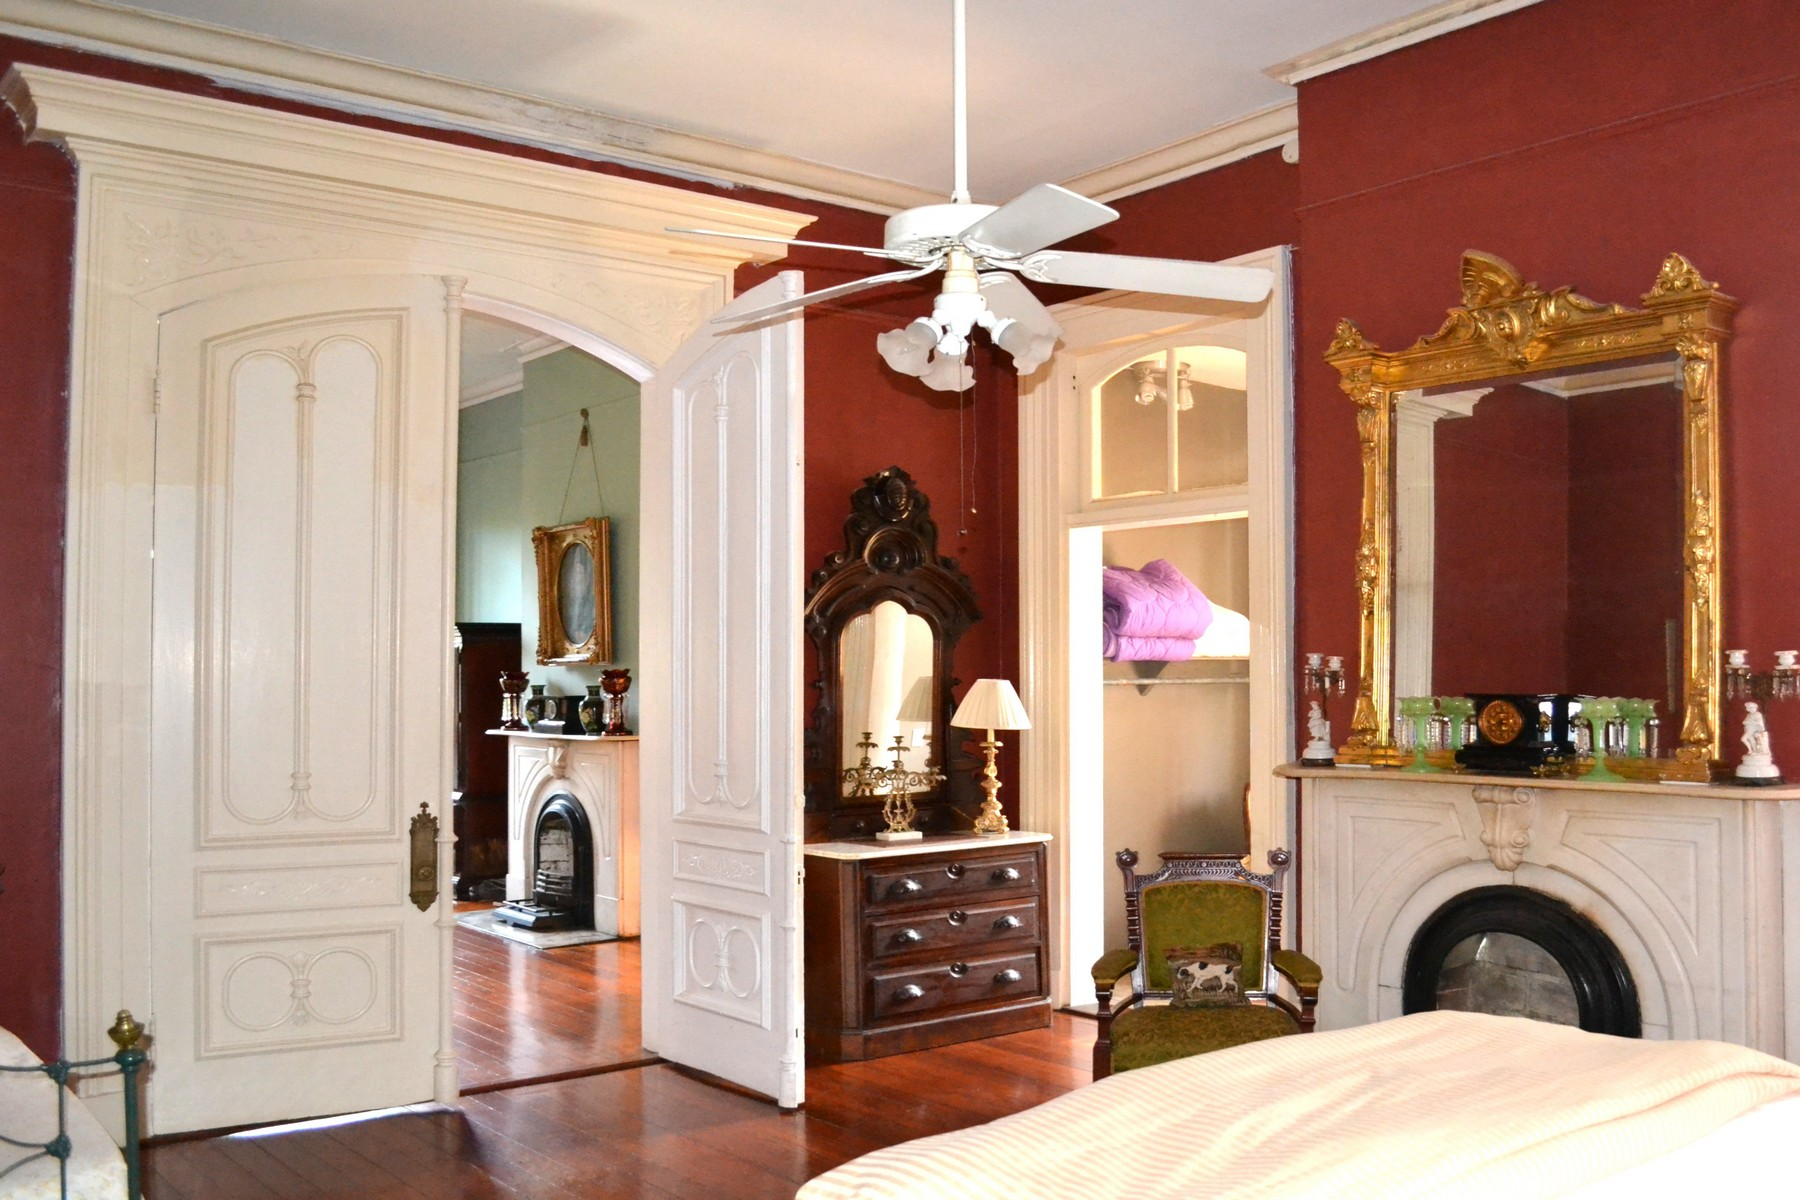 Additional photo for property listing at The Henry Howard House 1914 Esplanade Ave New Orleans, Louisiana 70116 United States